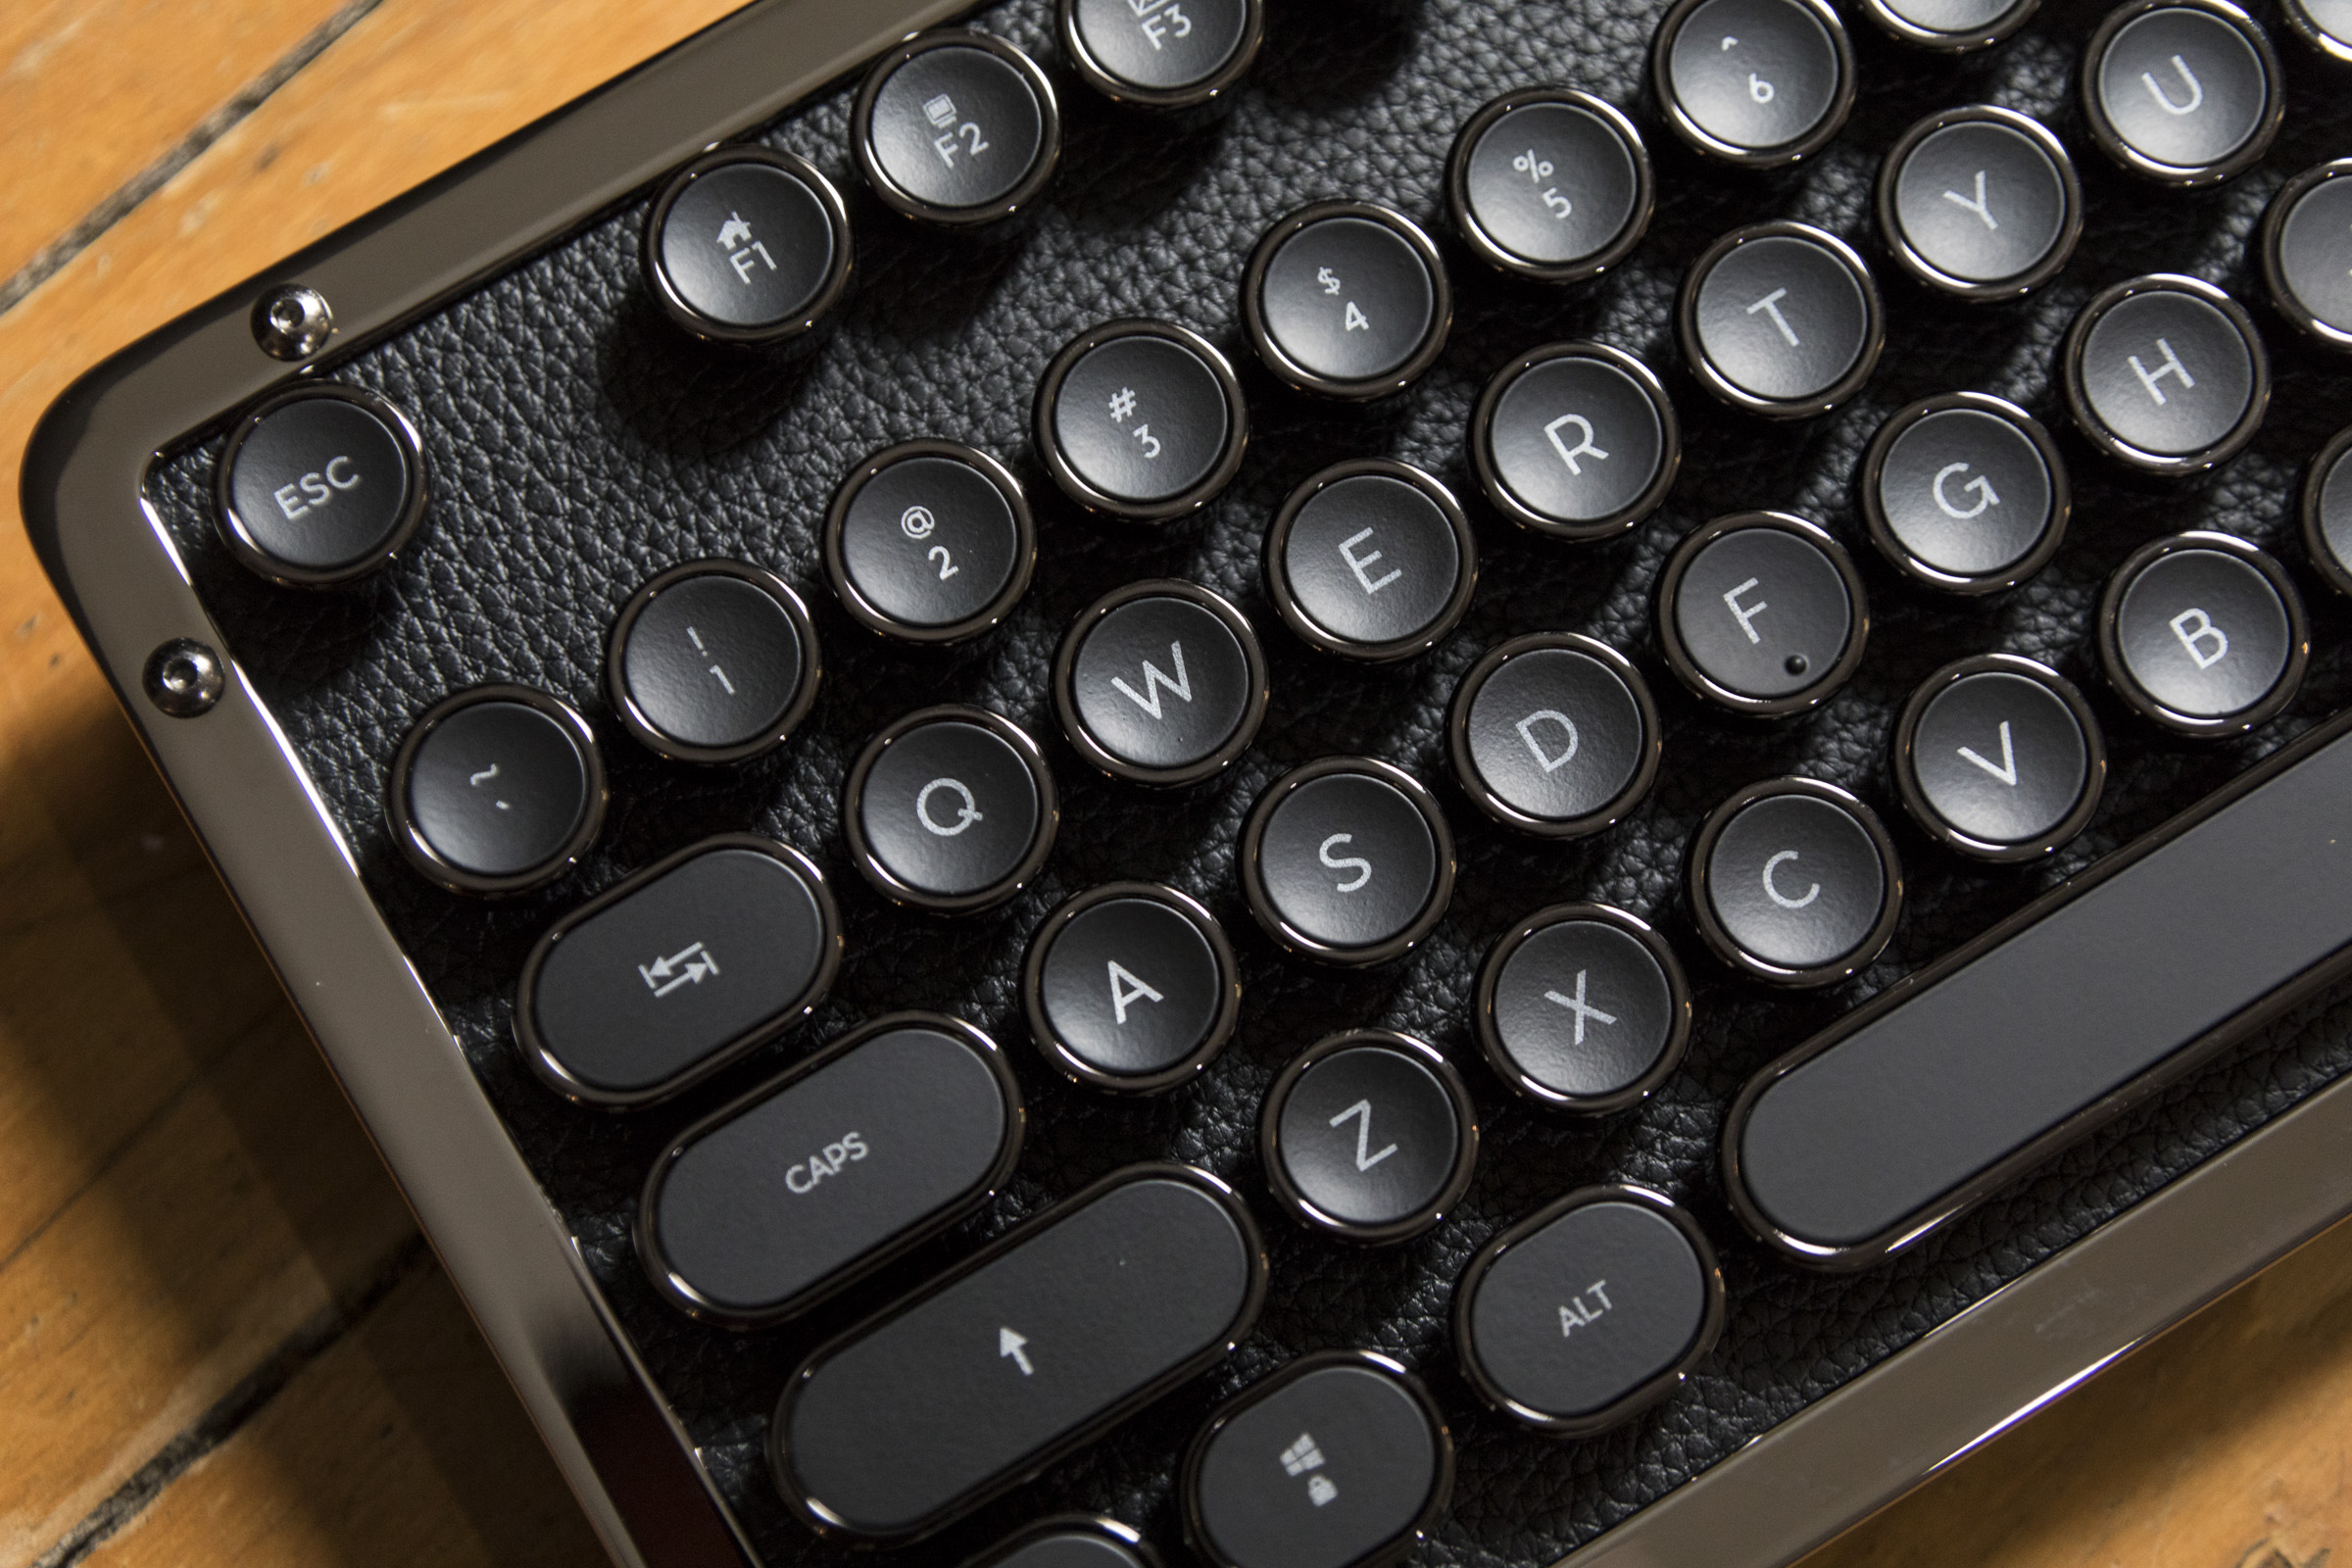 1518209330 736 the retro classic azio bluetooth keyboard inspired by the typewriter is a luxury treat - The retro-classic Azio Bluetooth keyboard inspired by the typewriter is a luxury treat